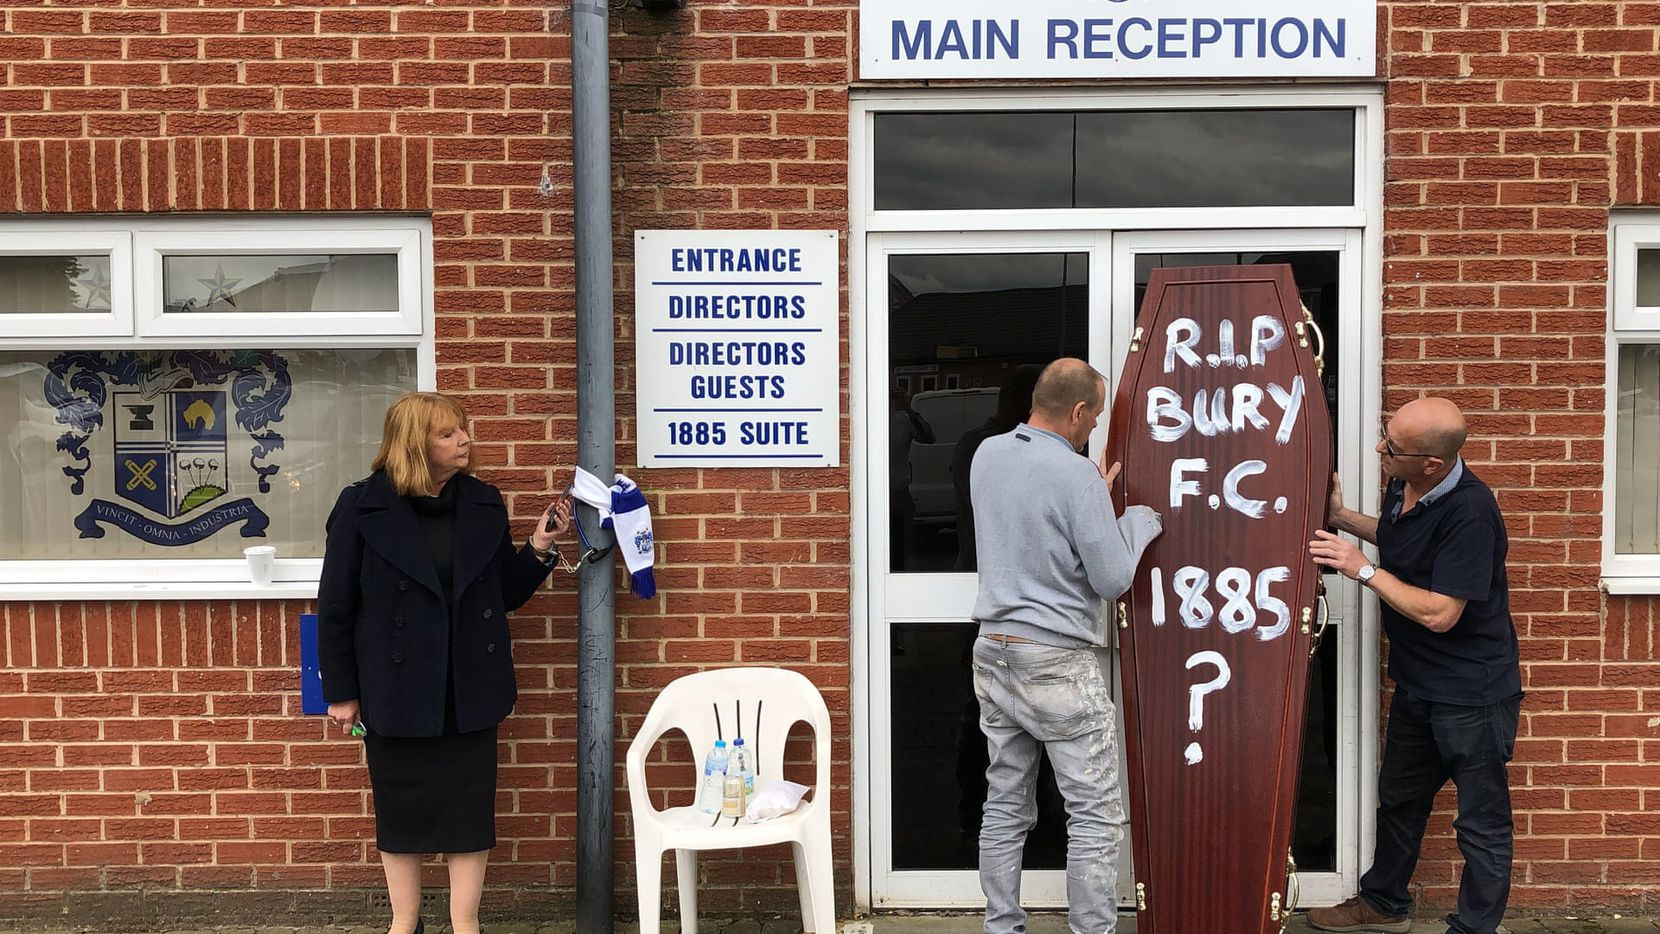 Former Bury FC director Joy Hart, who has handcuffed herself to the main stand at Gigg Lane, pleads for help to save the club as fans deliver a symbolic coffin to the front door.